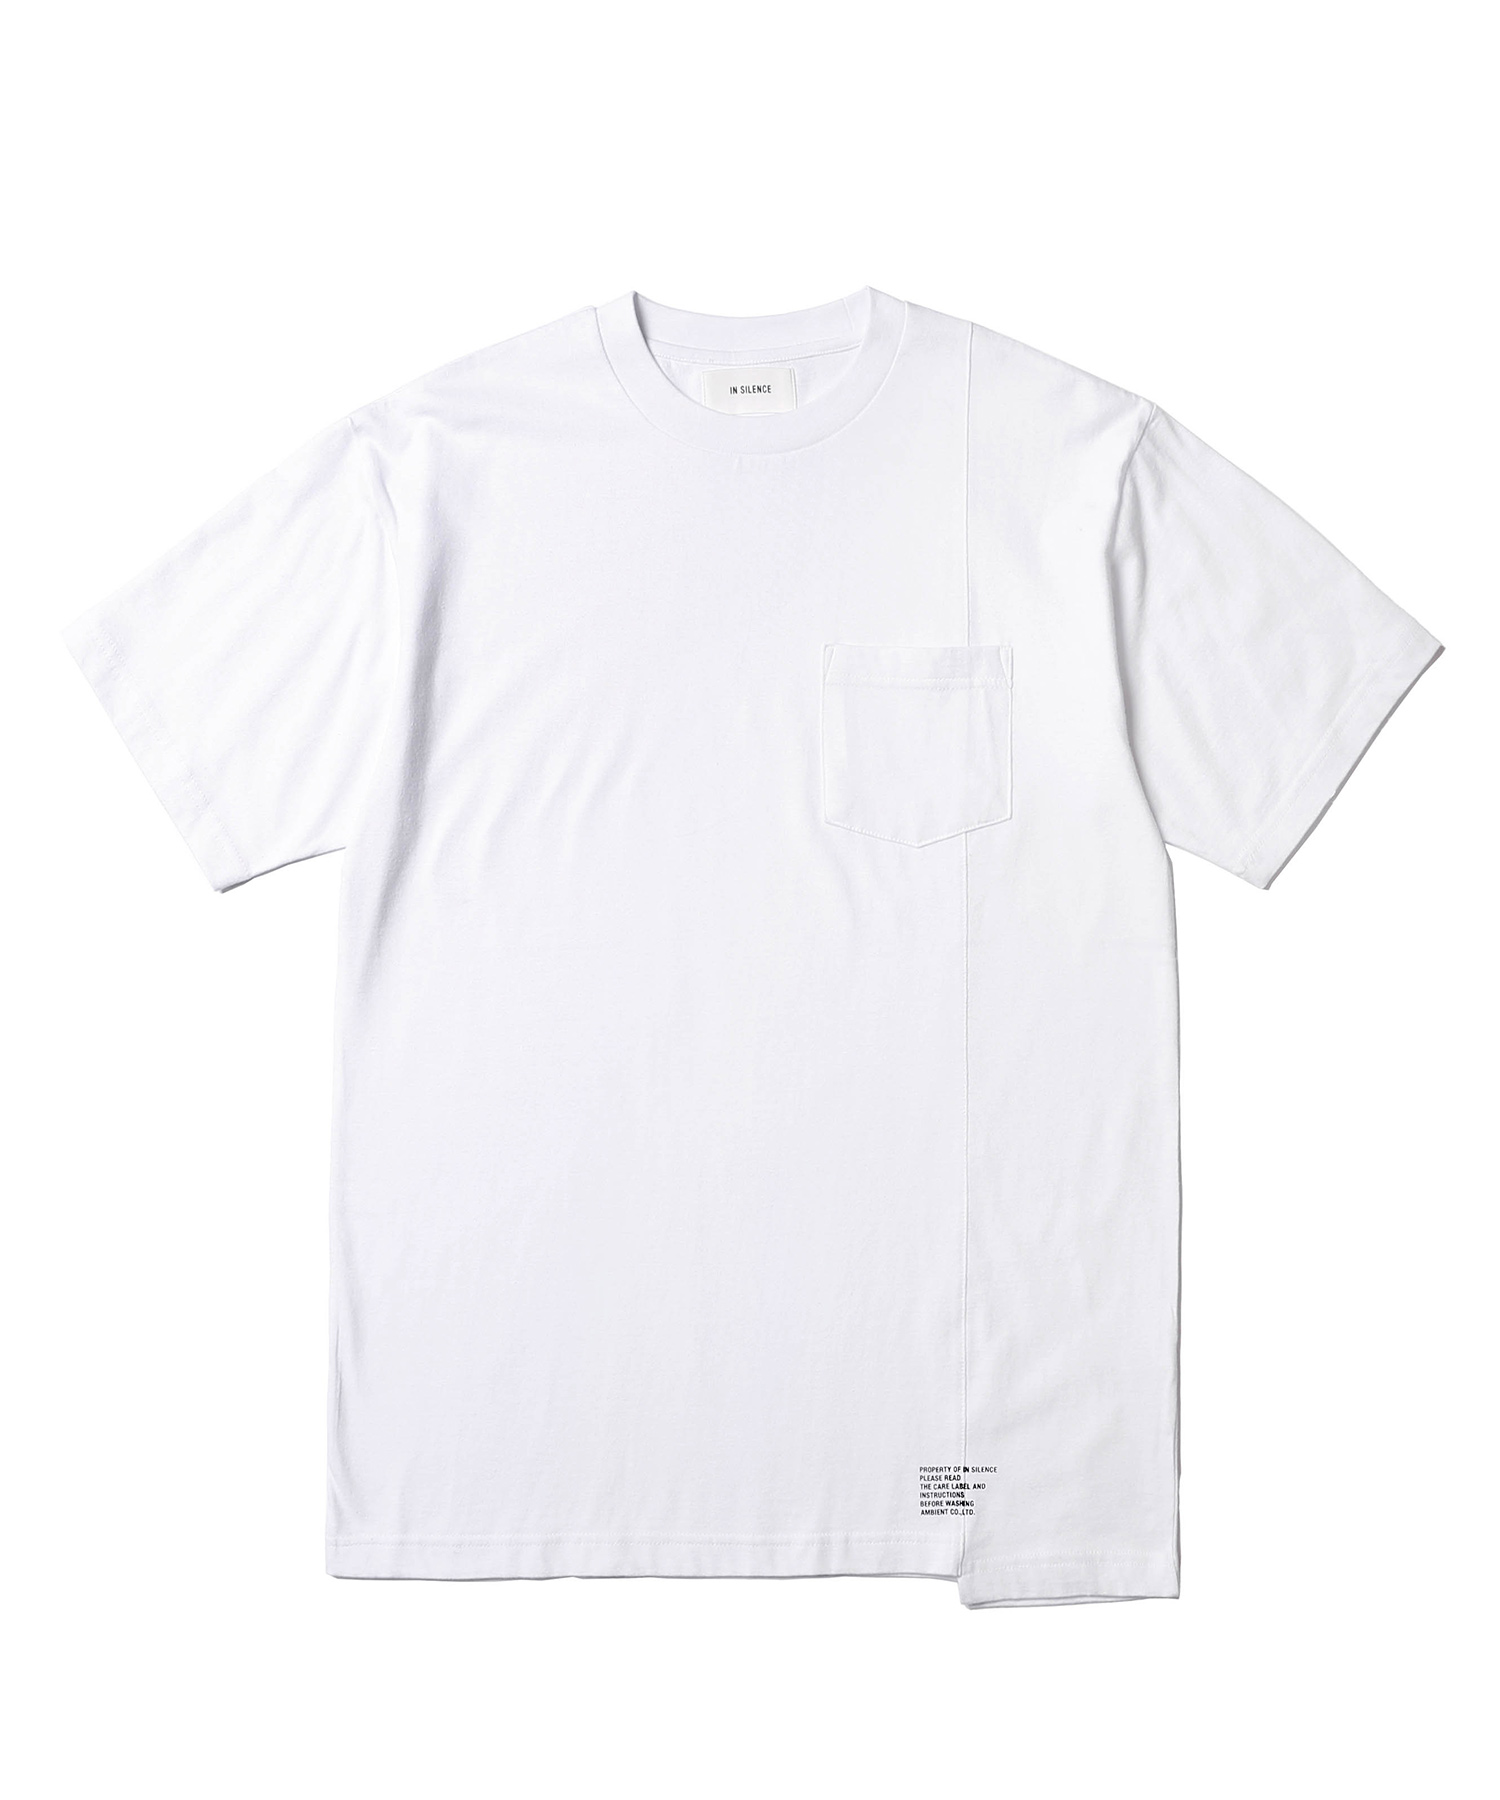 Panelled Pocket Tee (White)